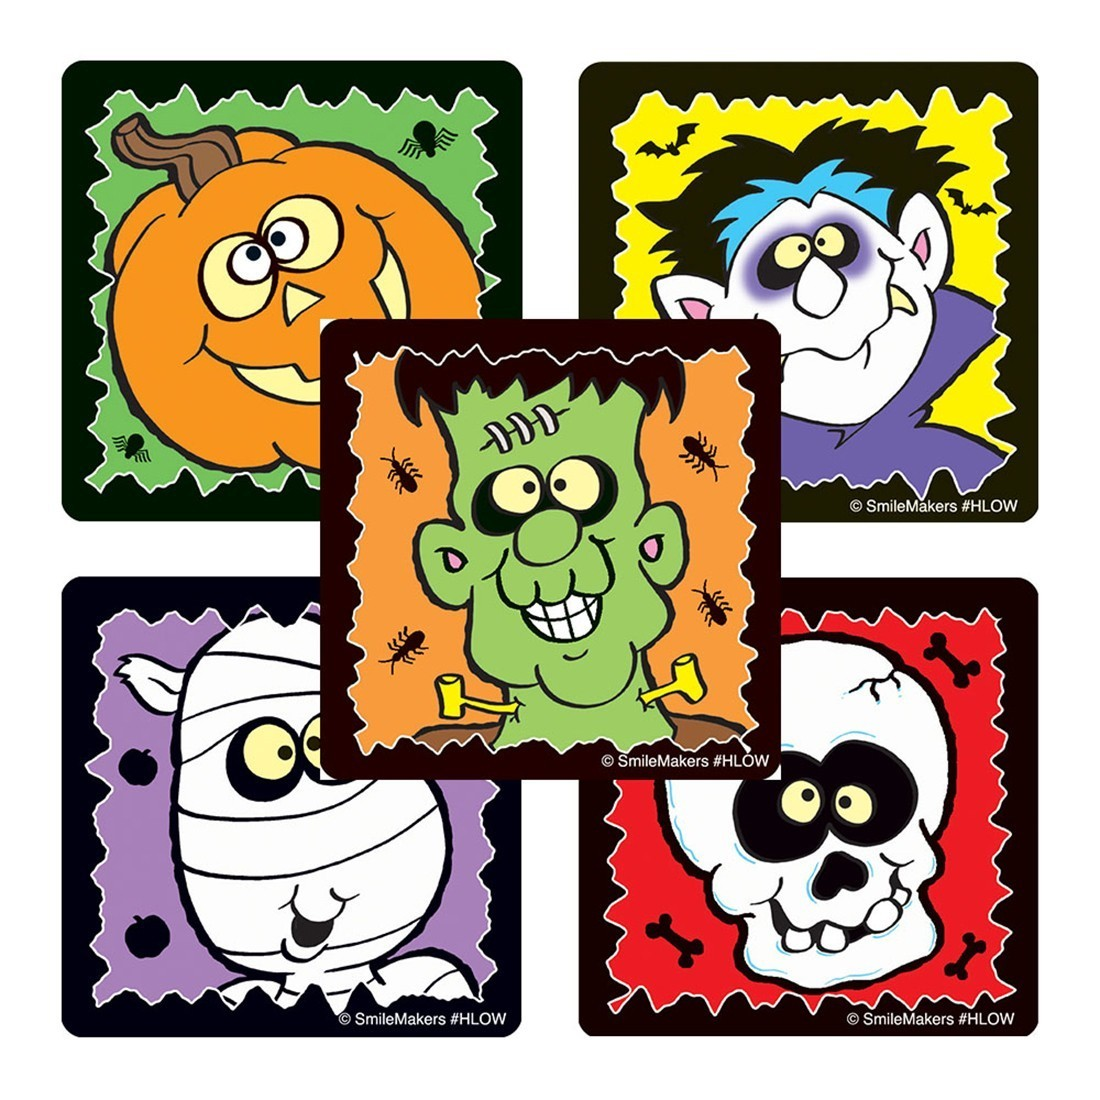 Glow in the Dark Funny Monster Stickers            [image]